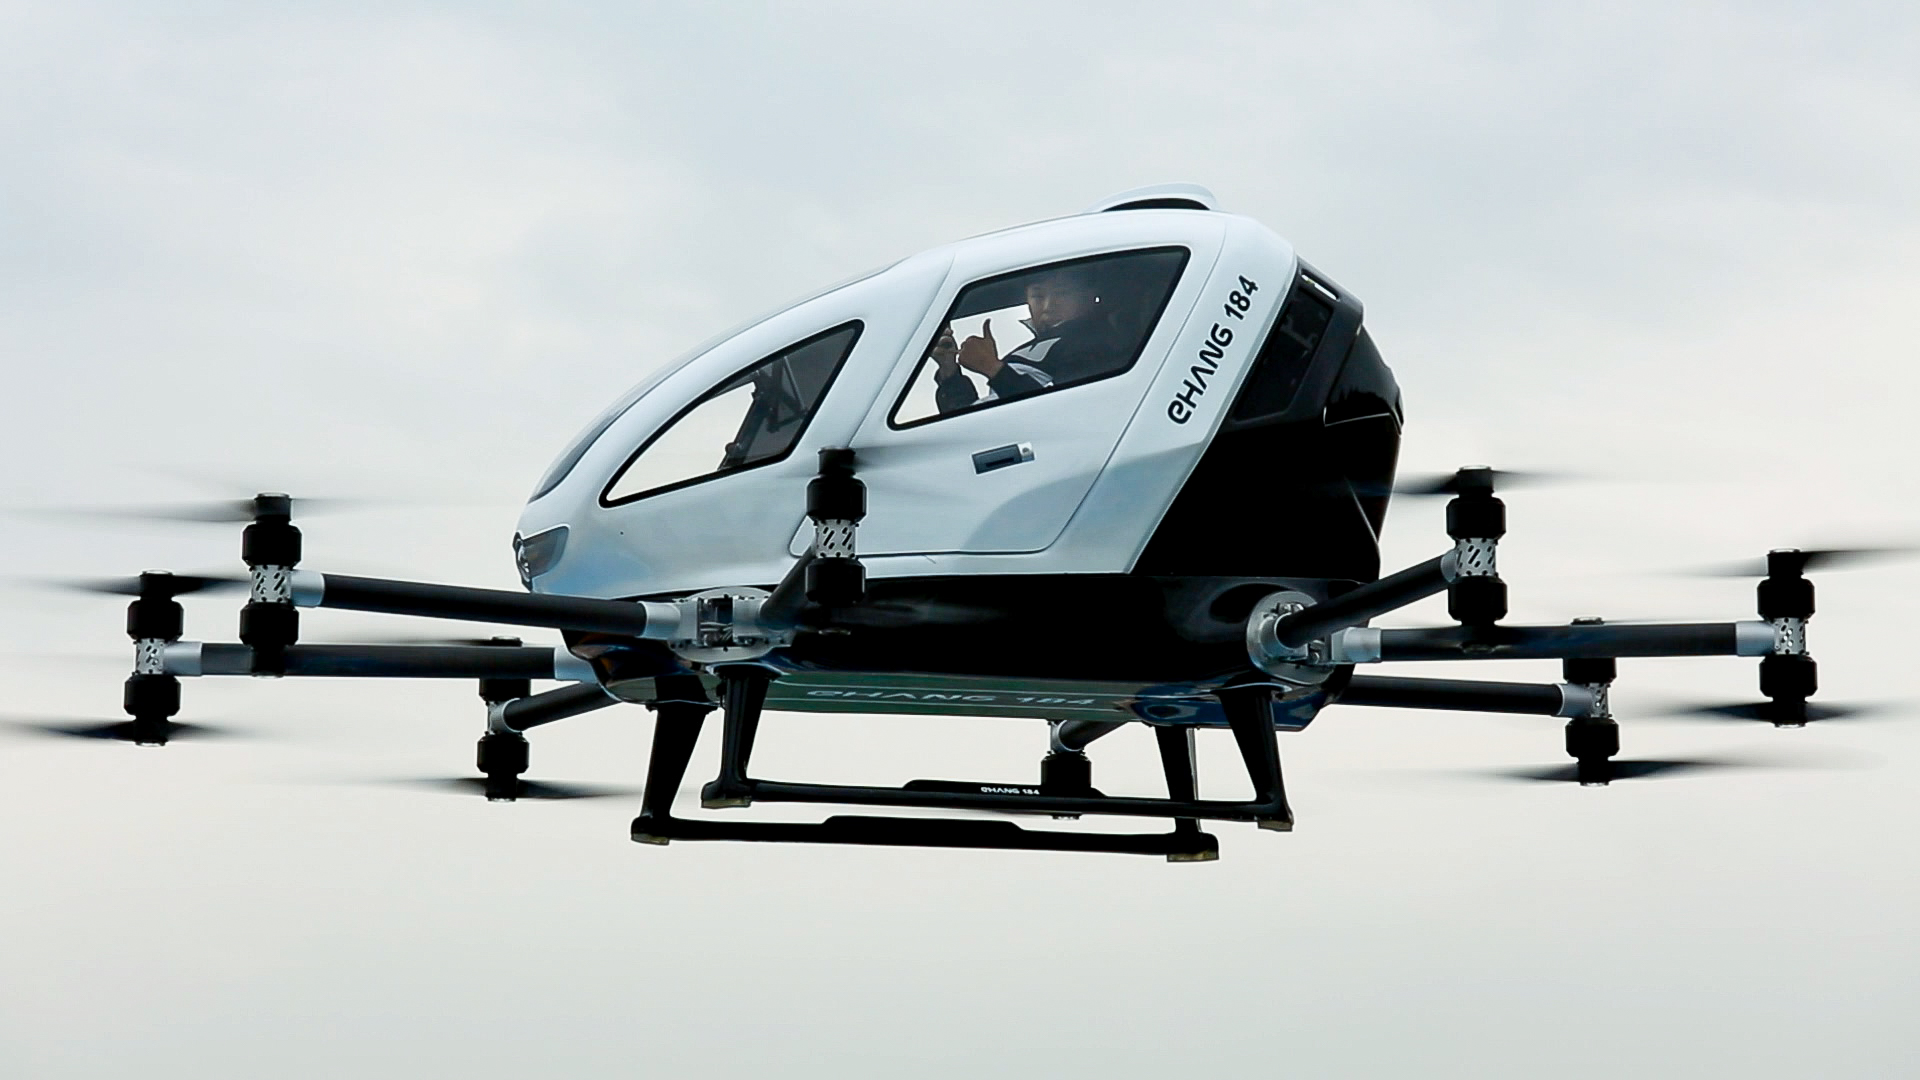 Ehang S Passenger Carrying Drones Look Insanely Impressive